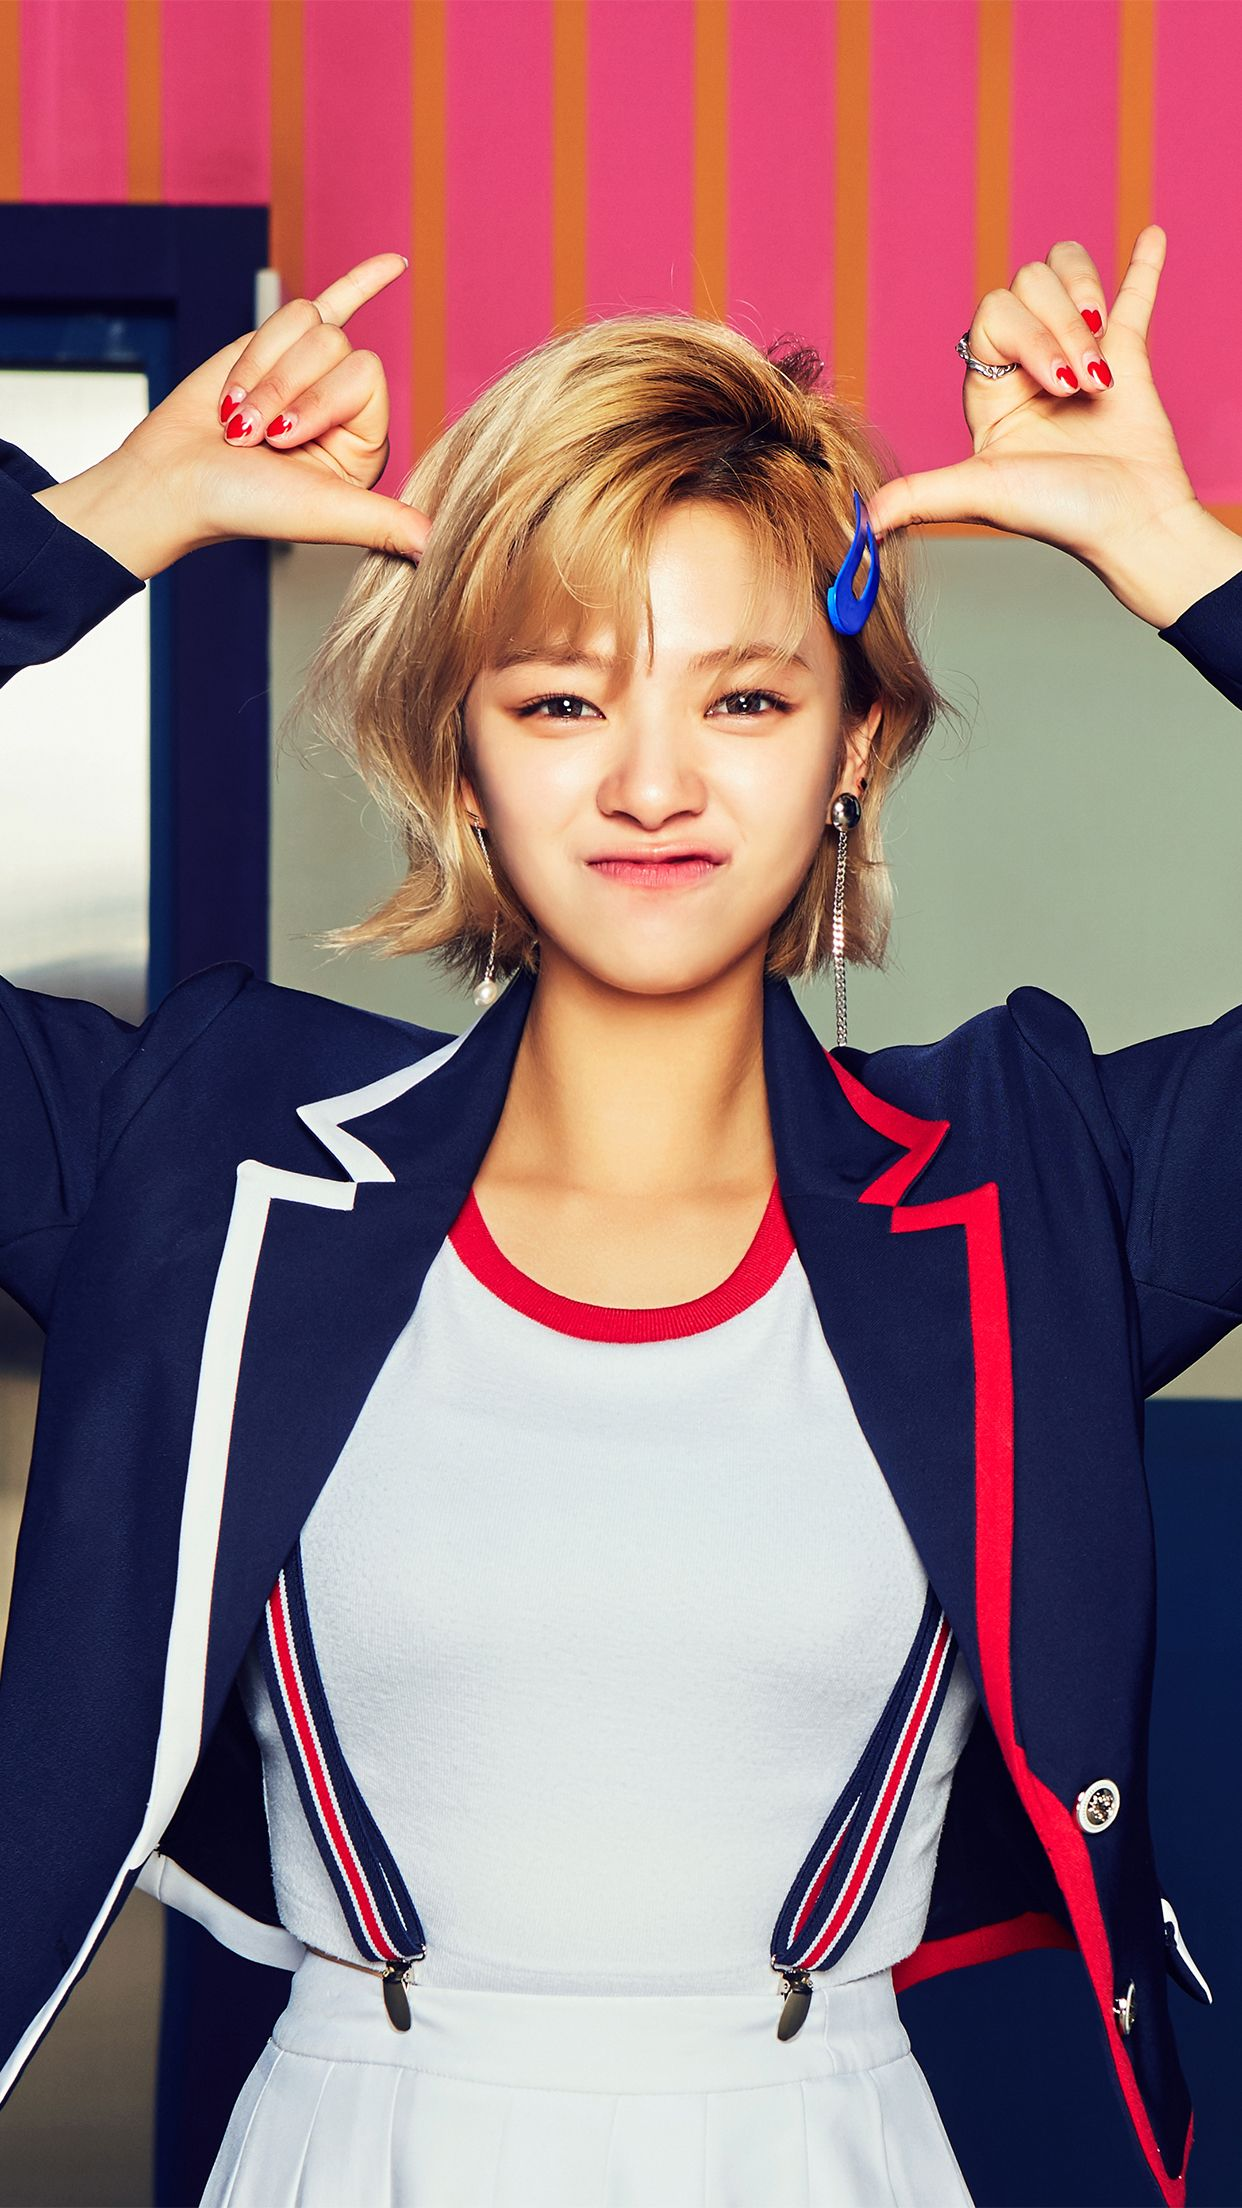 iPhone Wallpaper TWICE YooJeongYeon JeongYeon 1242x2208